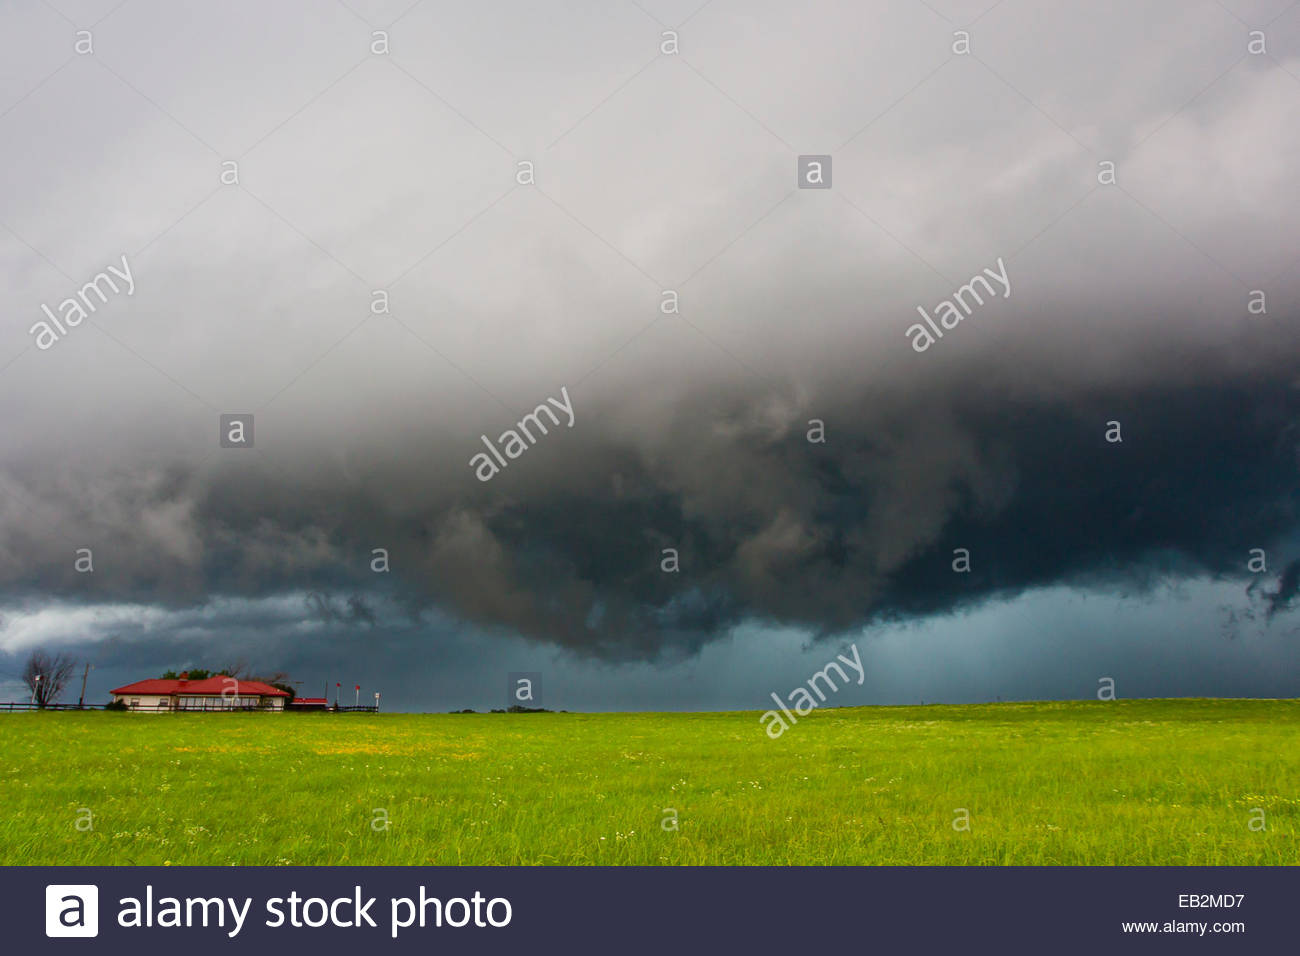 Dark skies from a supercell thunderstorm over a ranch and fields. - Stock Image